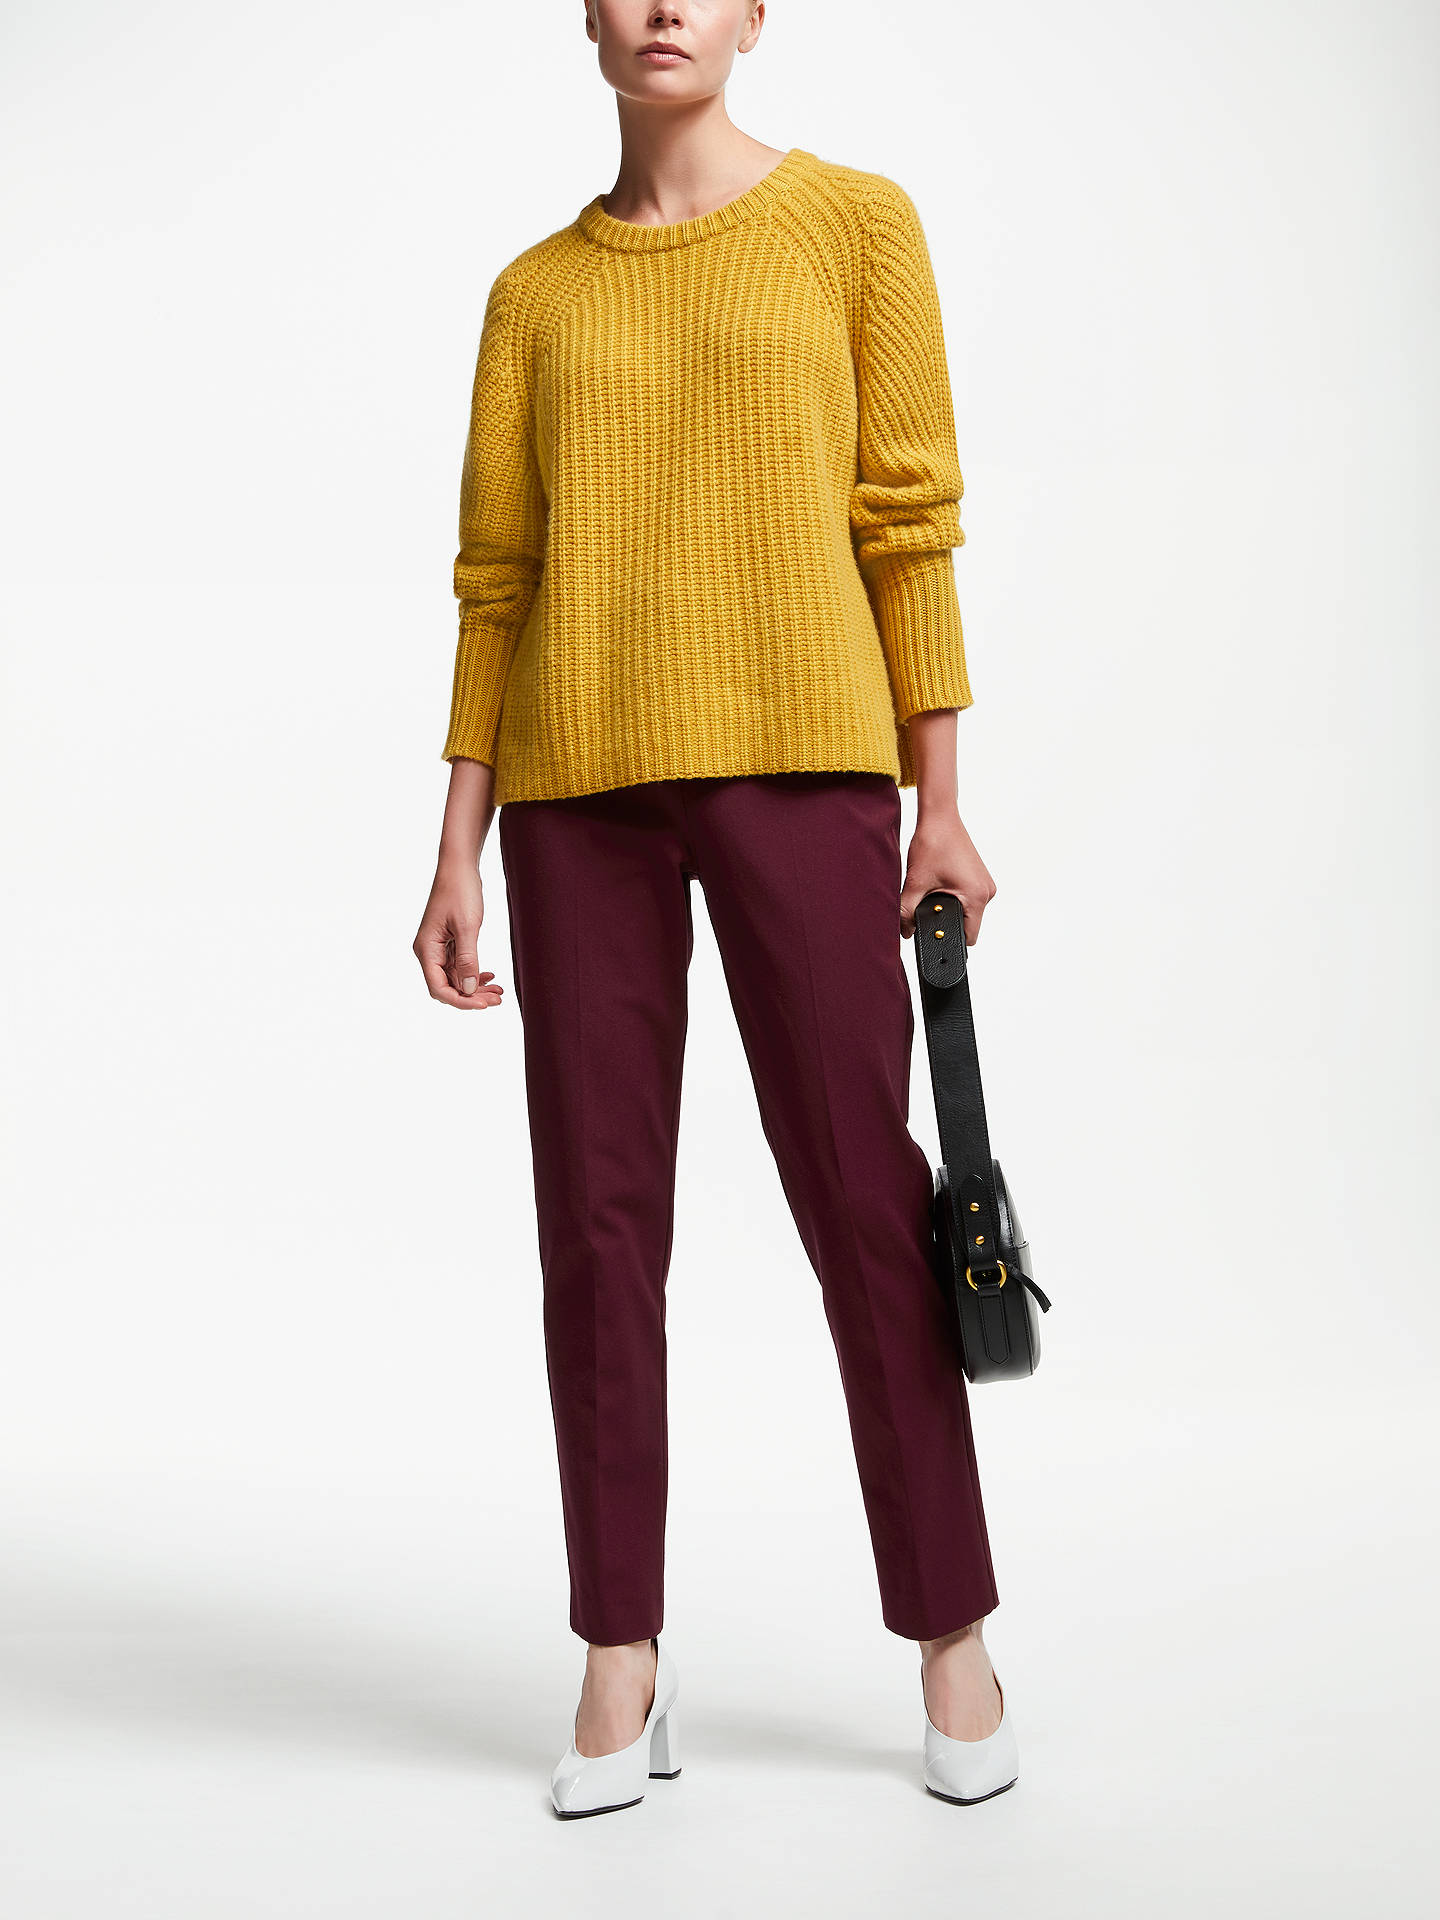 Buy John Lewis & Partners Dionne Trousers, Wine, 8 Online at johnlewis.com